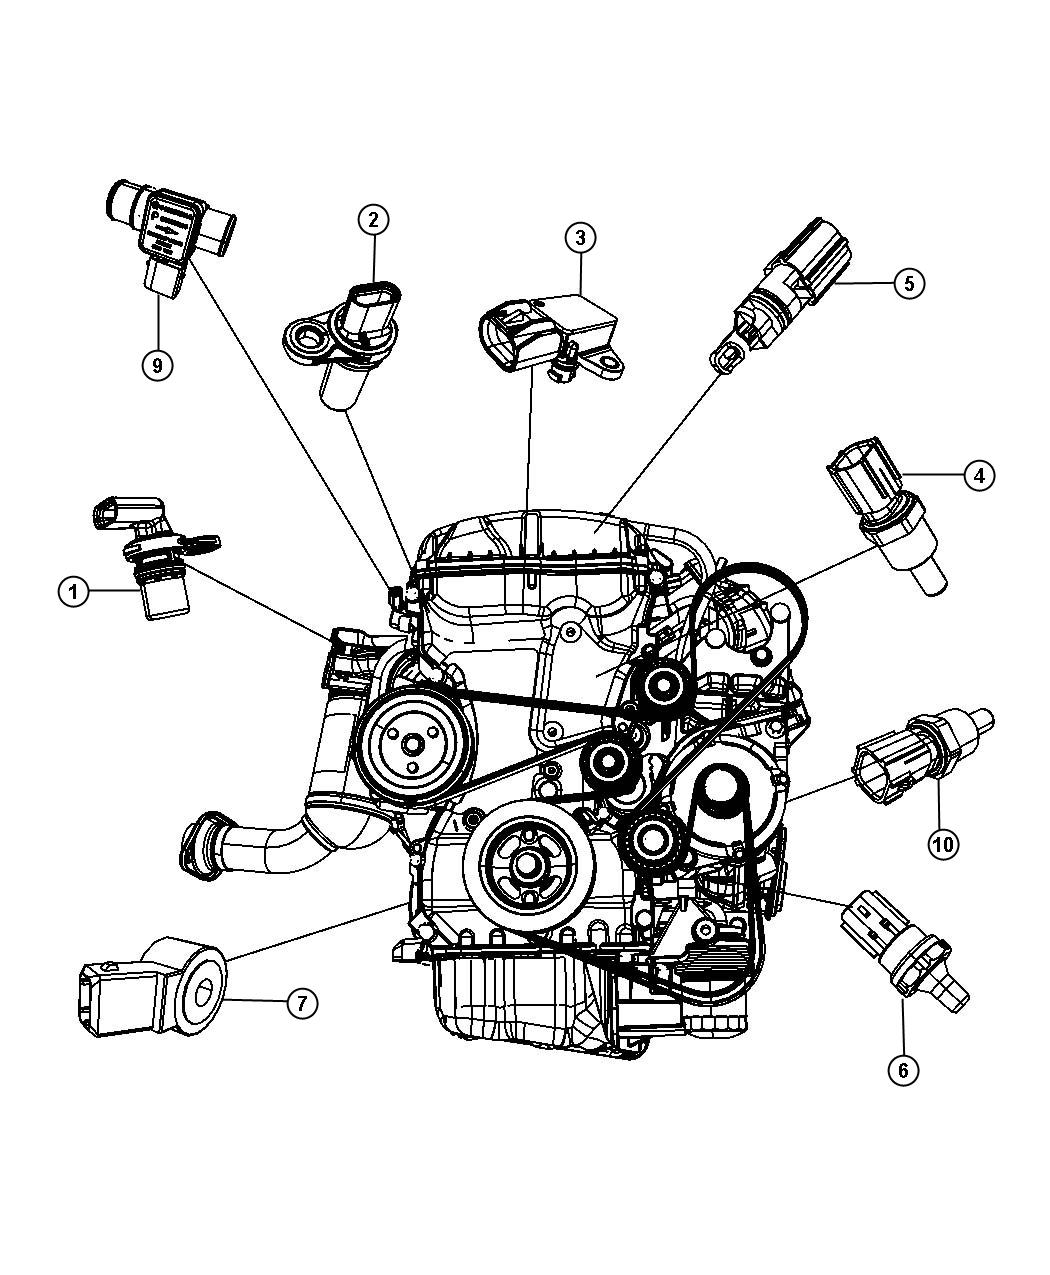 Subaru Tribeca Thermostat Location